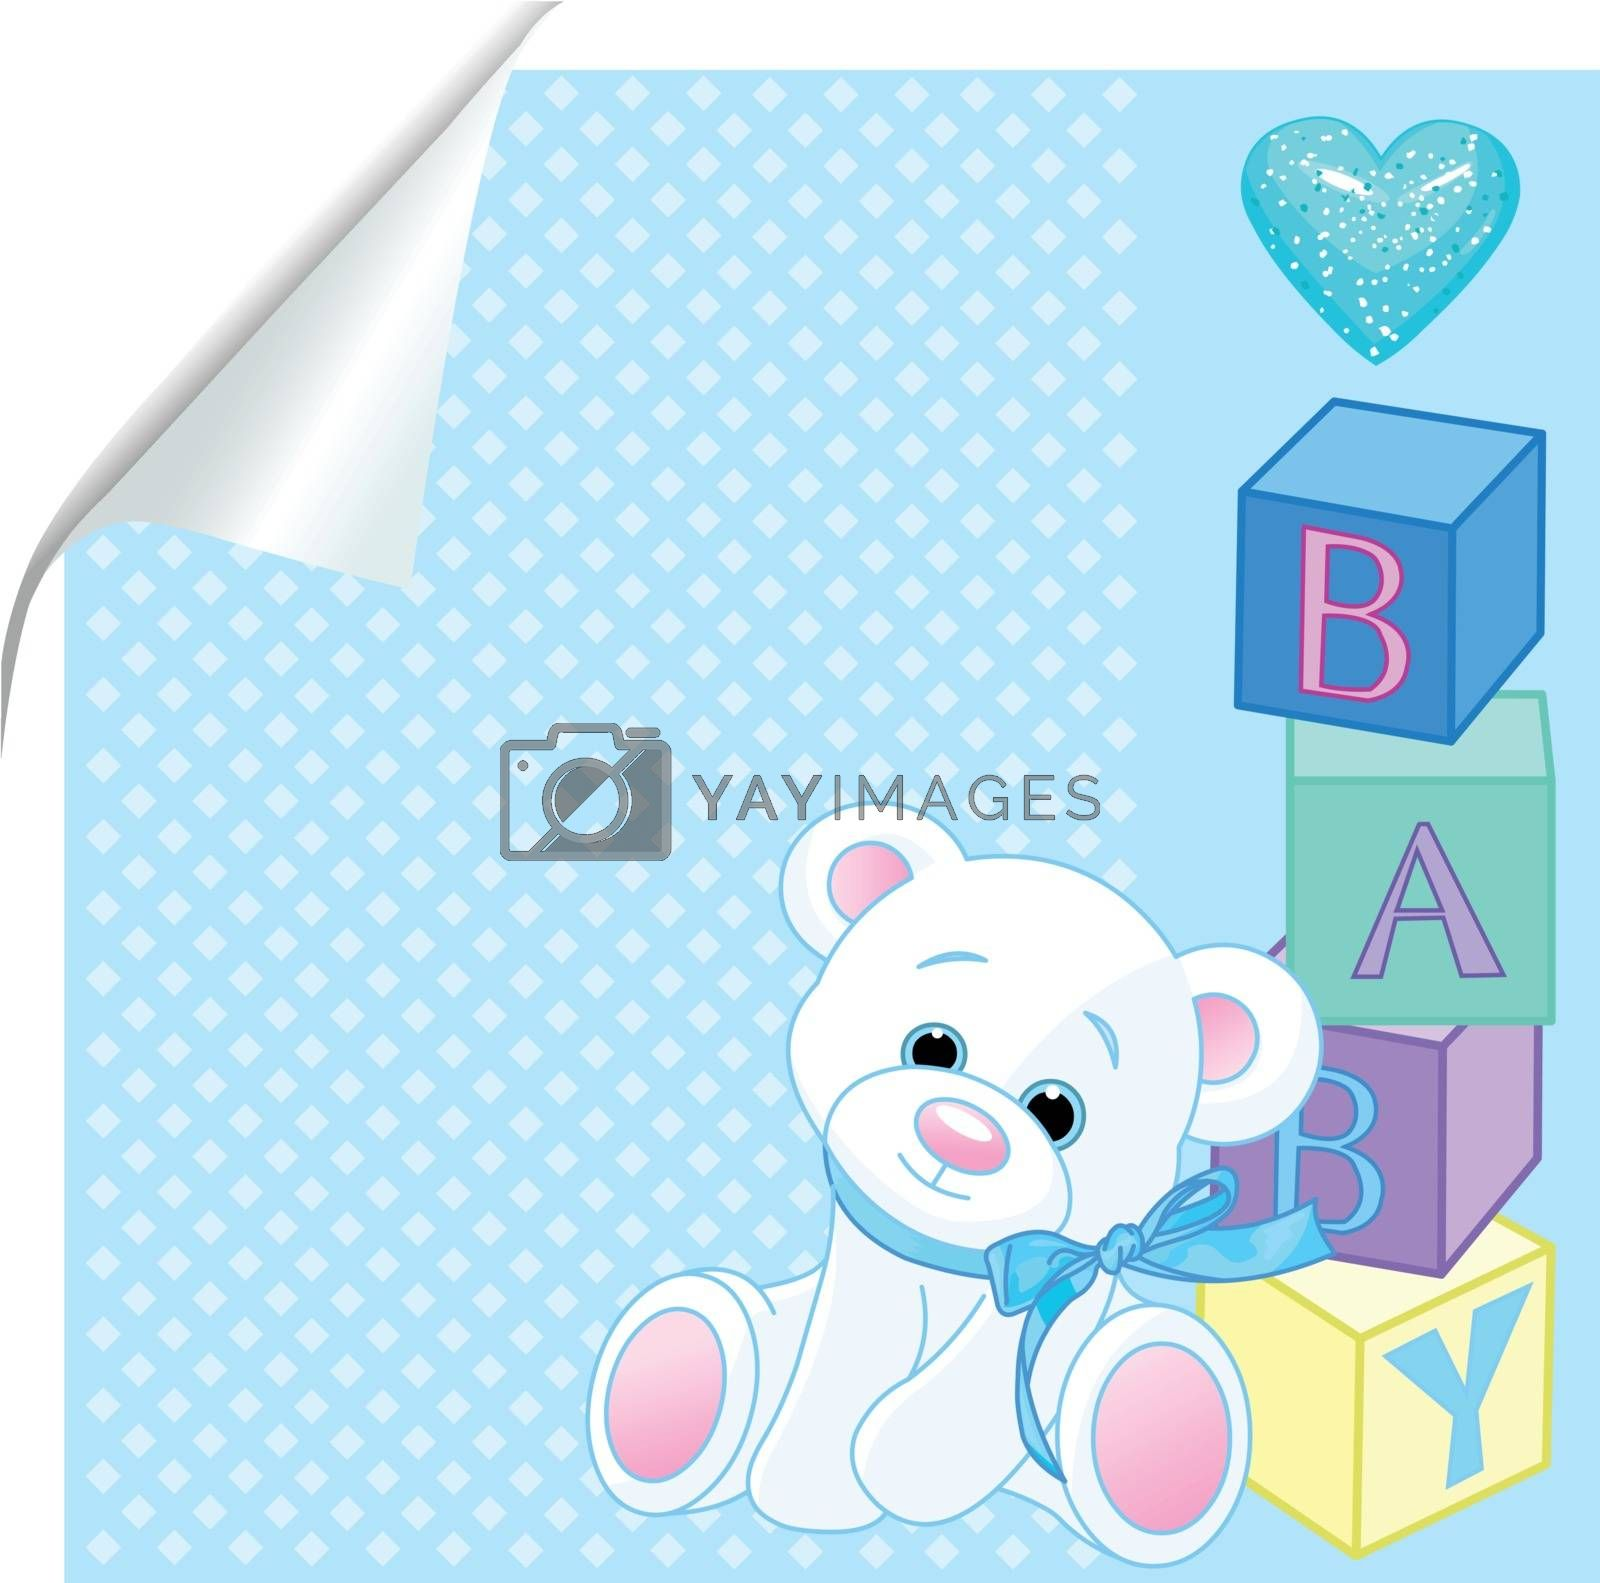 Royalty free image of Baby blue by Dazdraperma